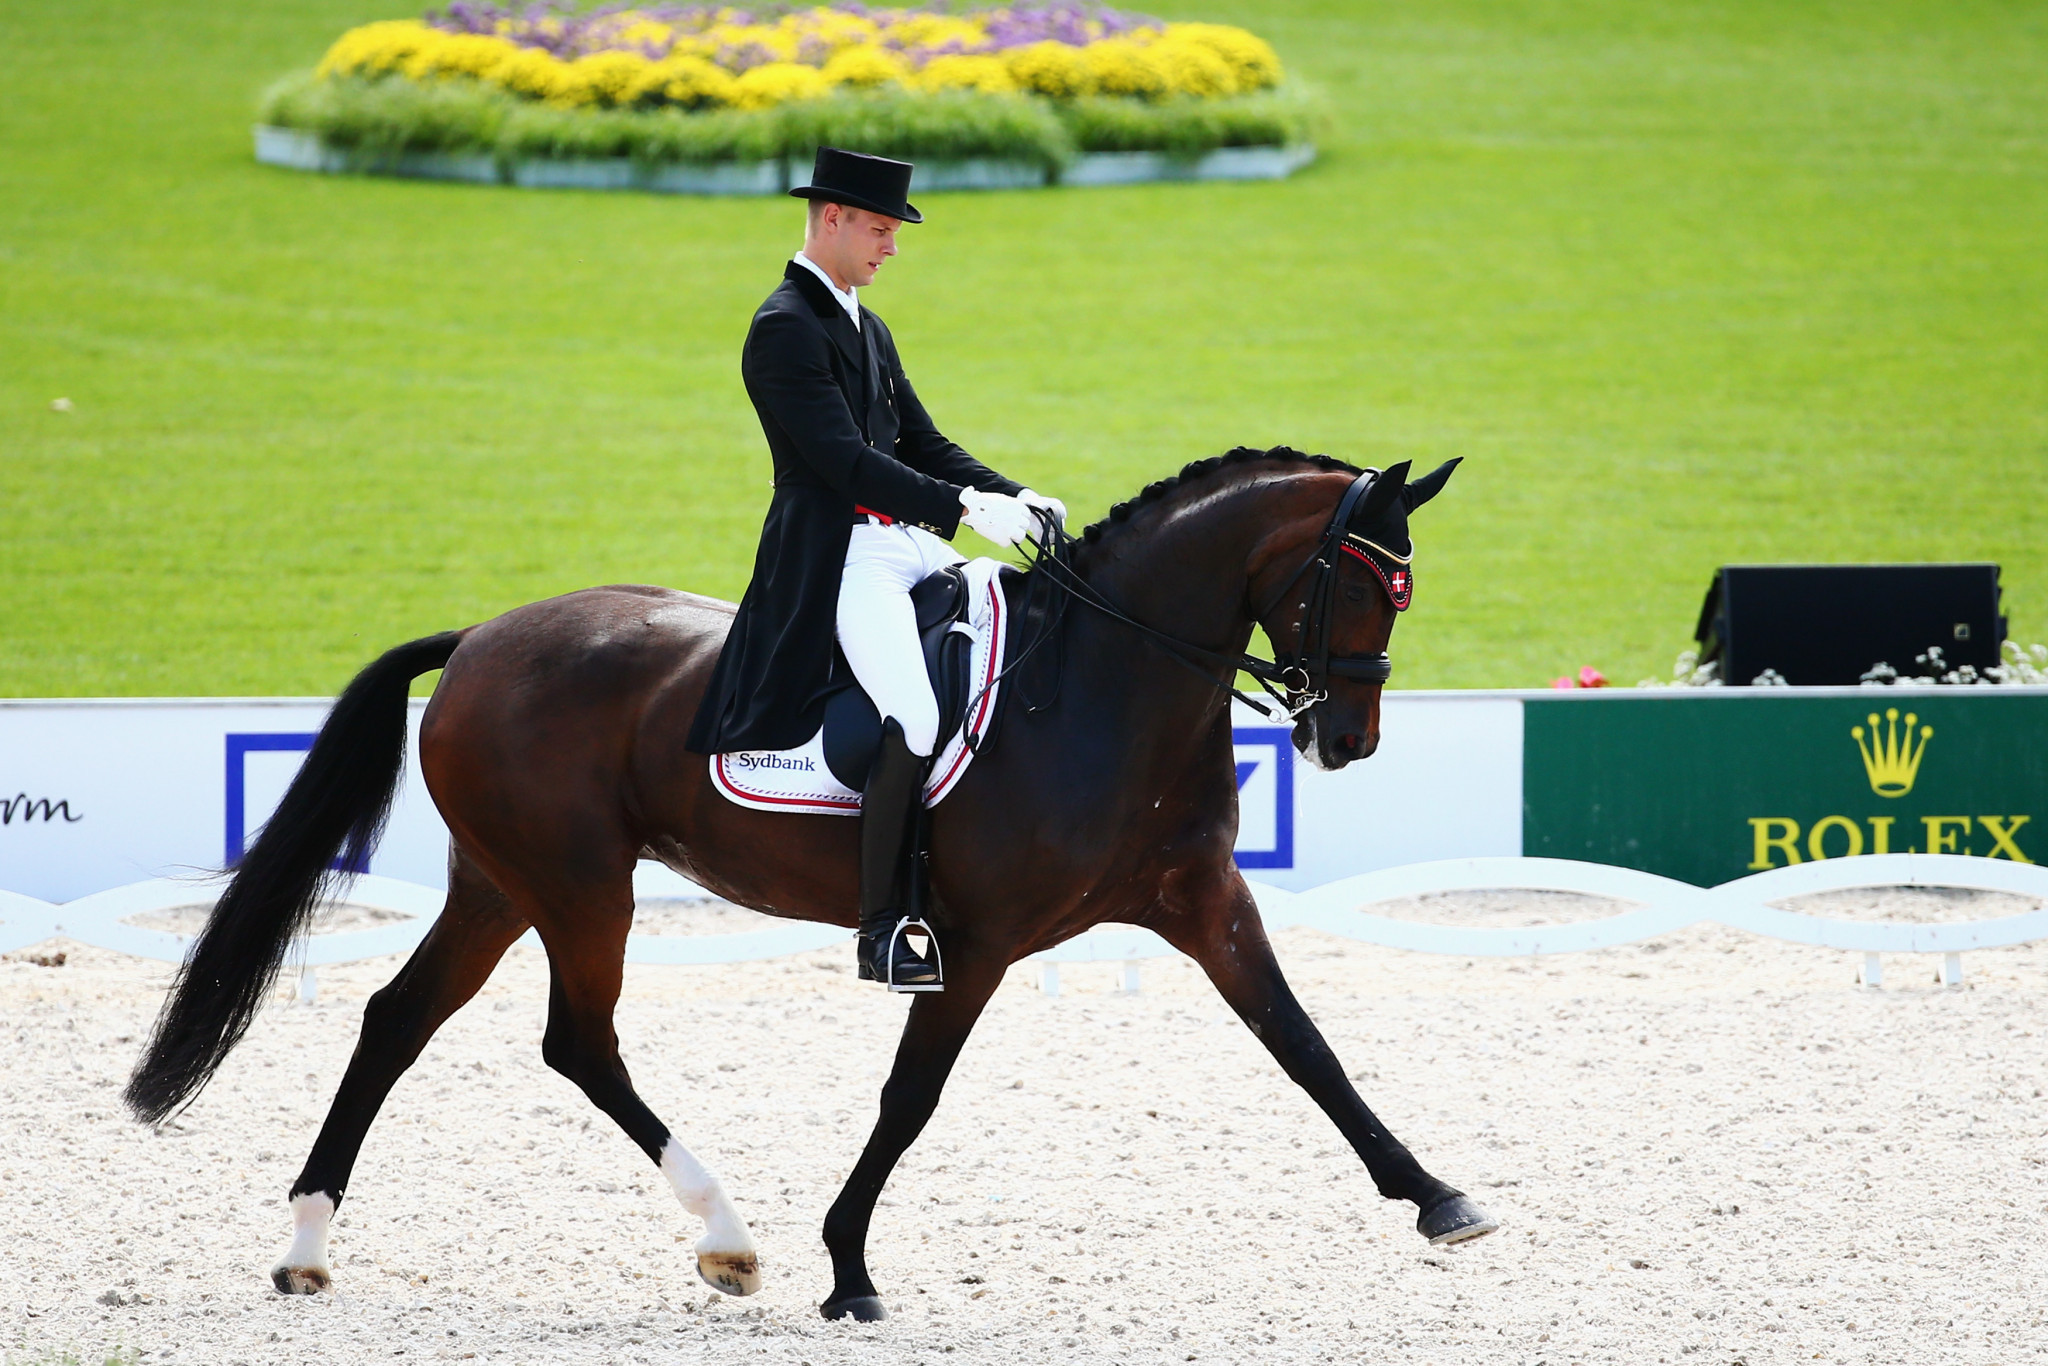 Home favourite Andersen wins Grand Prix at season-opening FEI Dressage World Cup Western European League event